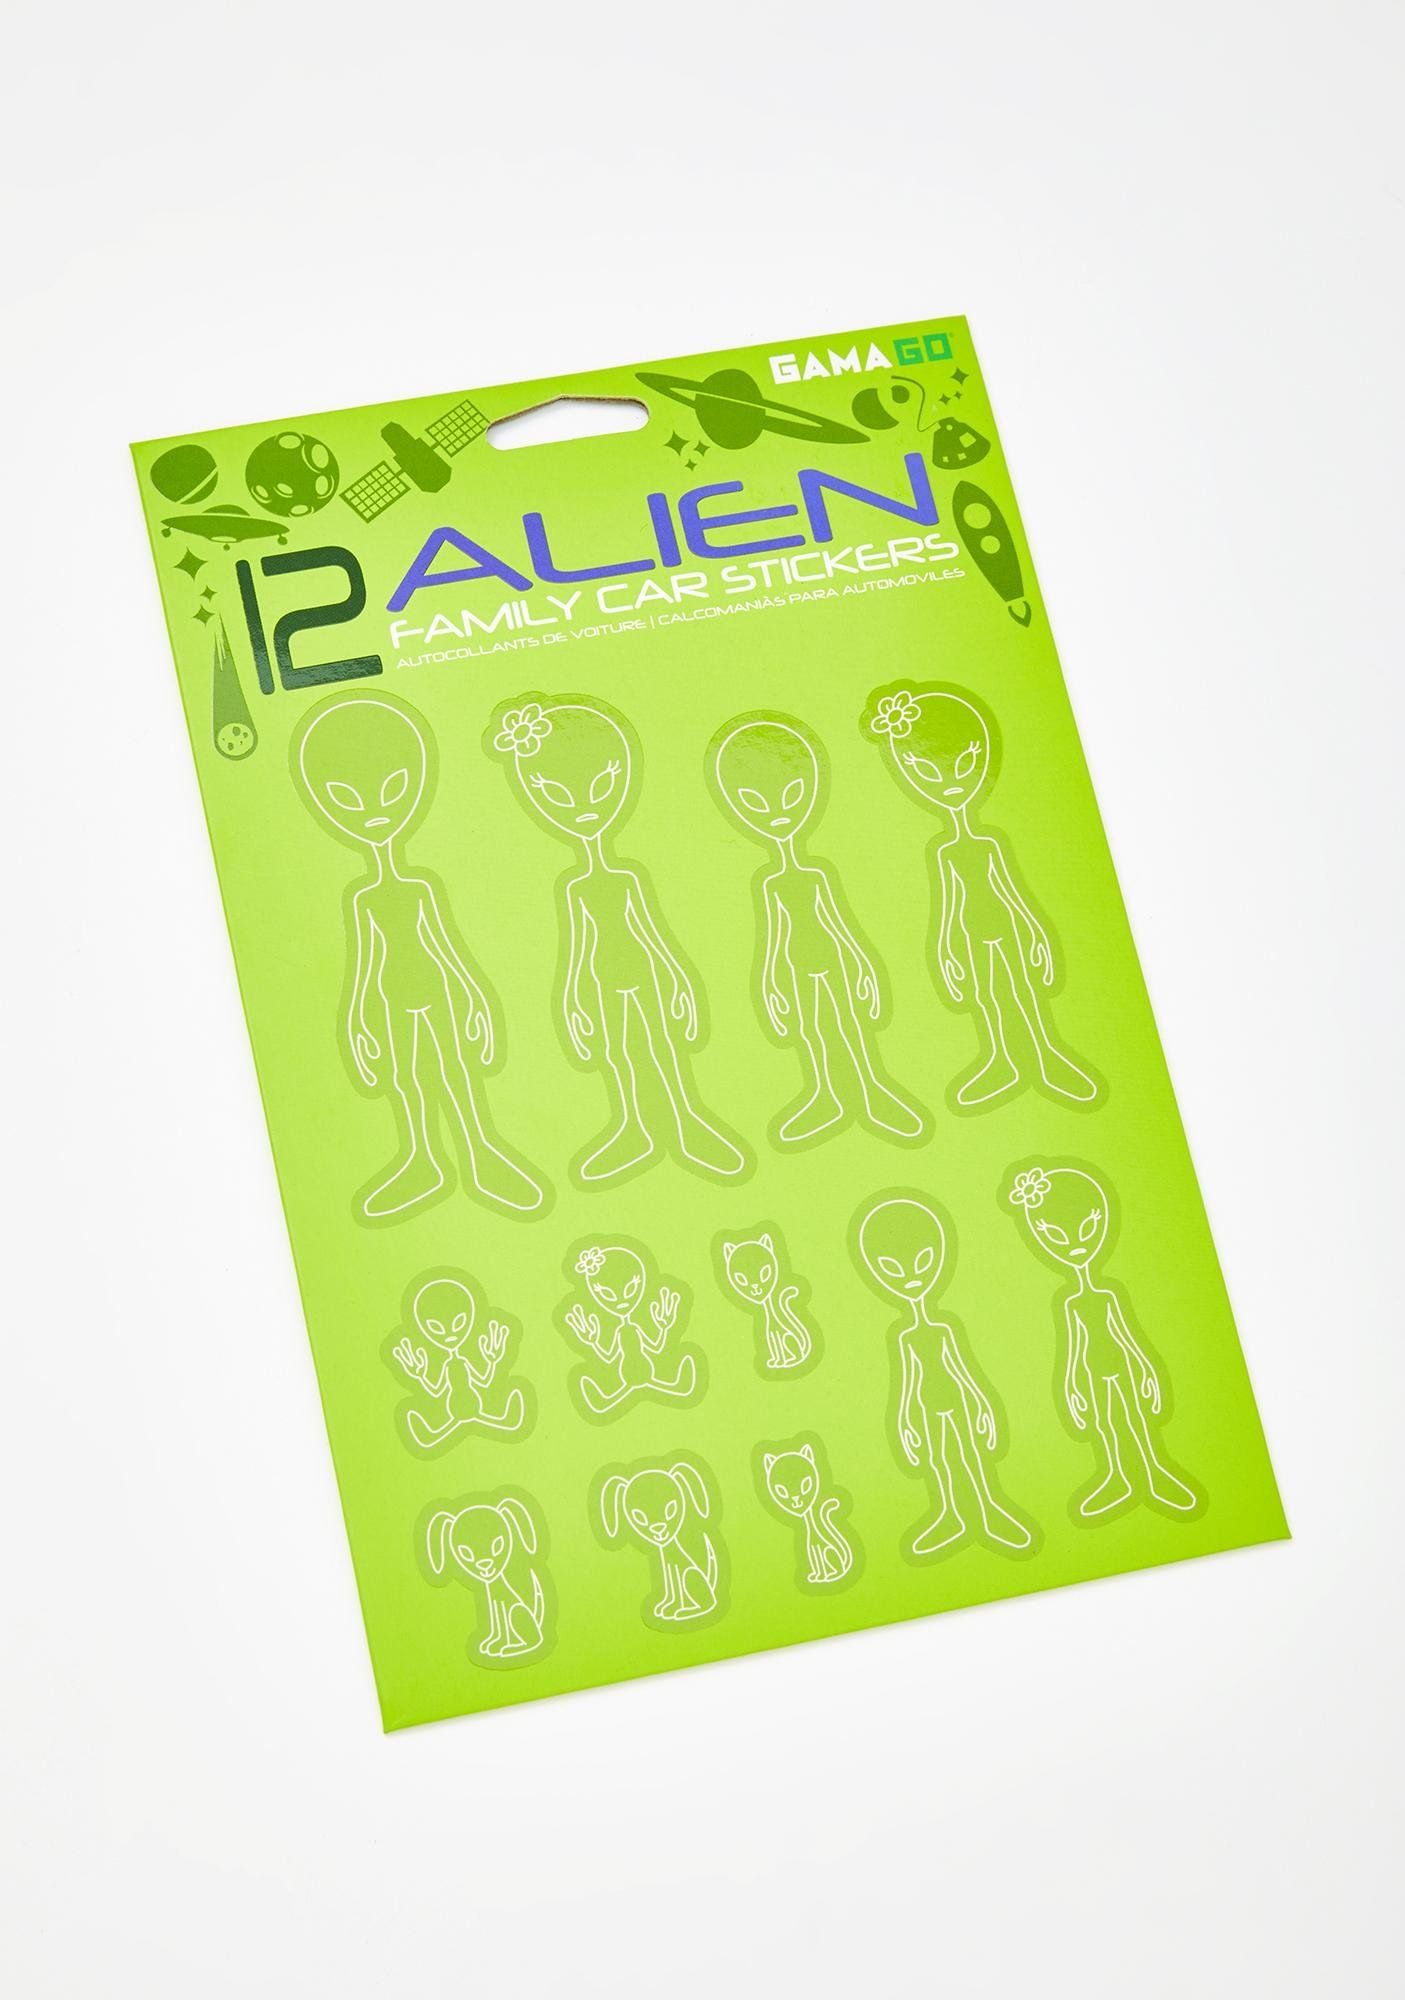 Alien Family Car Stickers Family Car Stickers Car Stickers Family Car [ 2000 x 1405 Pixel ]